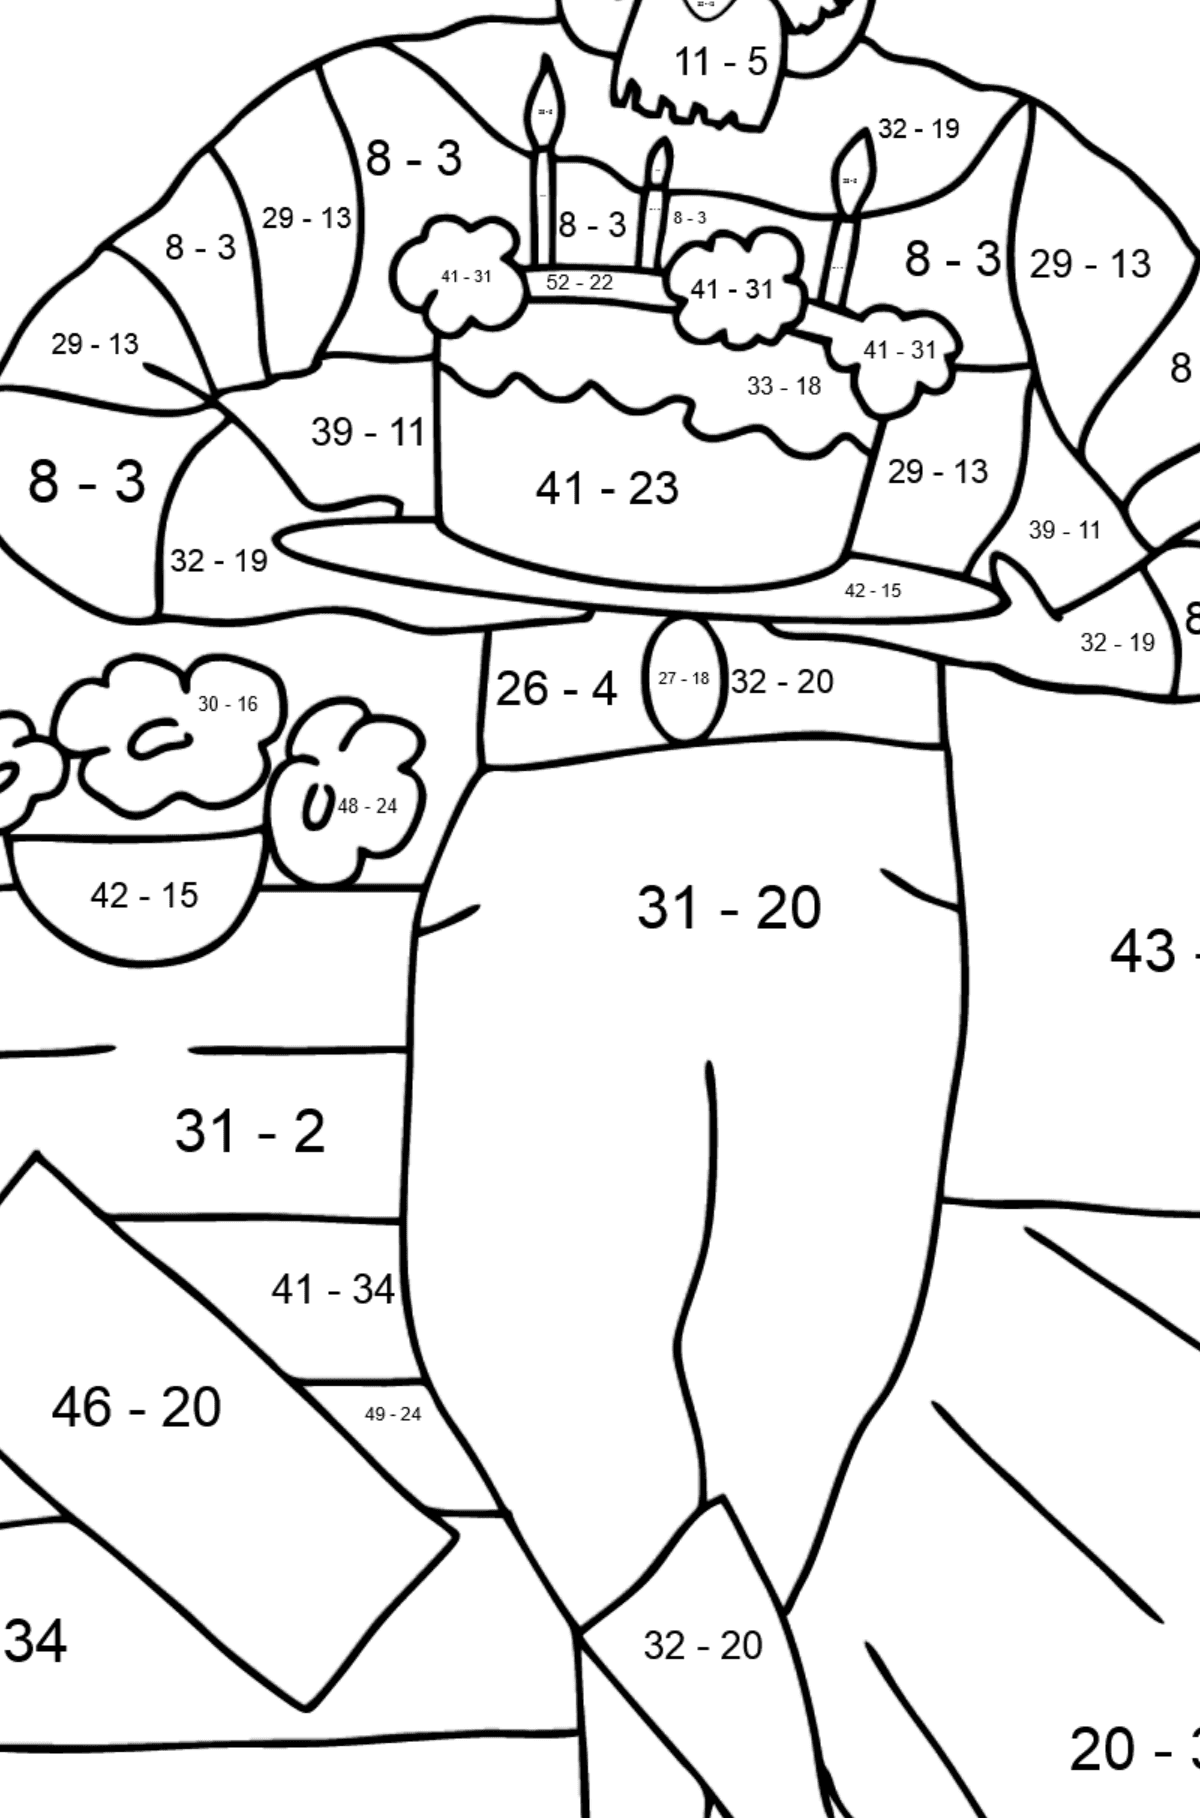 Coloring Page - A Pirate is Celebrating his Birthday - Math Coloring - Subtraction for Kids